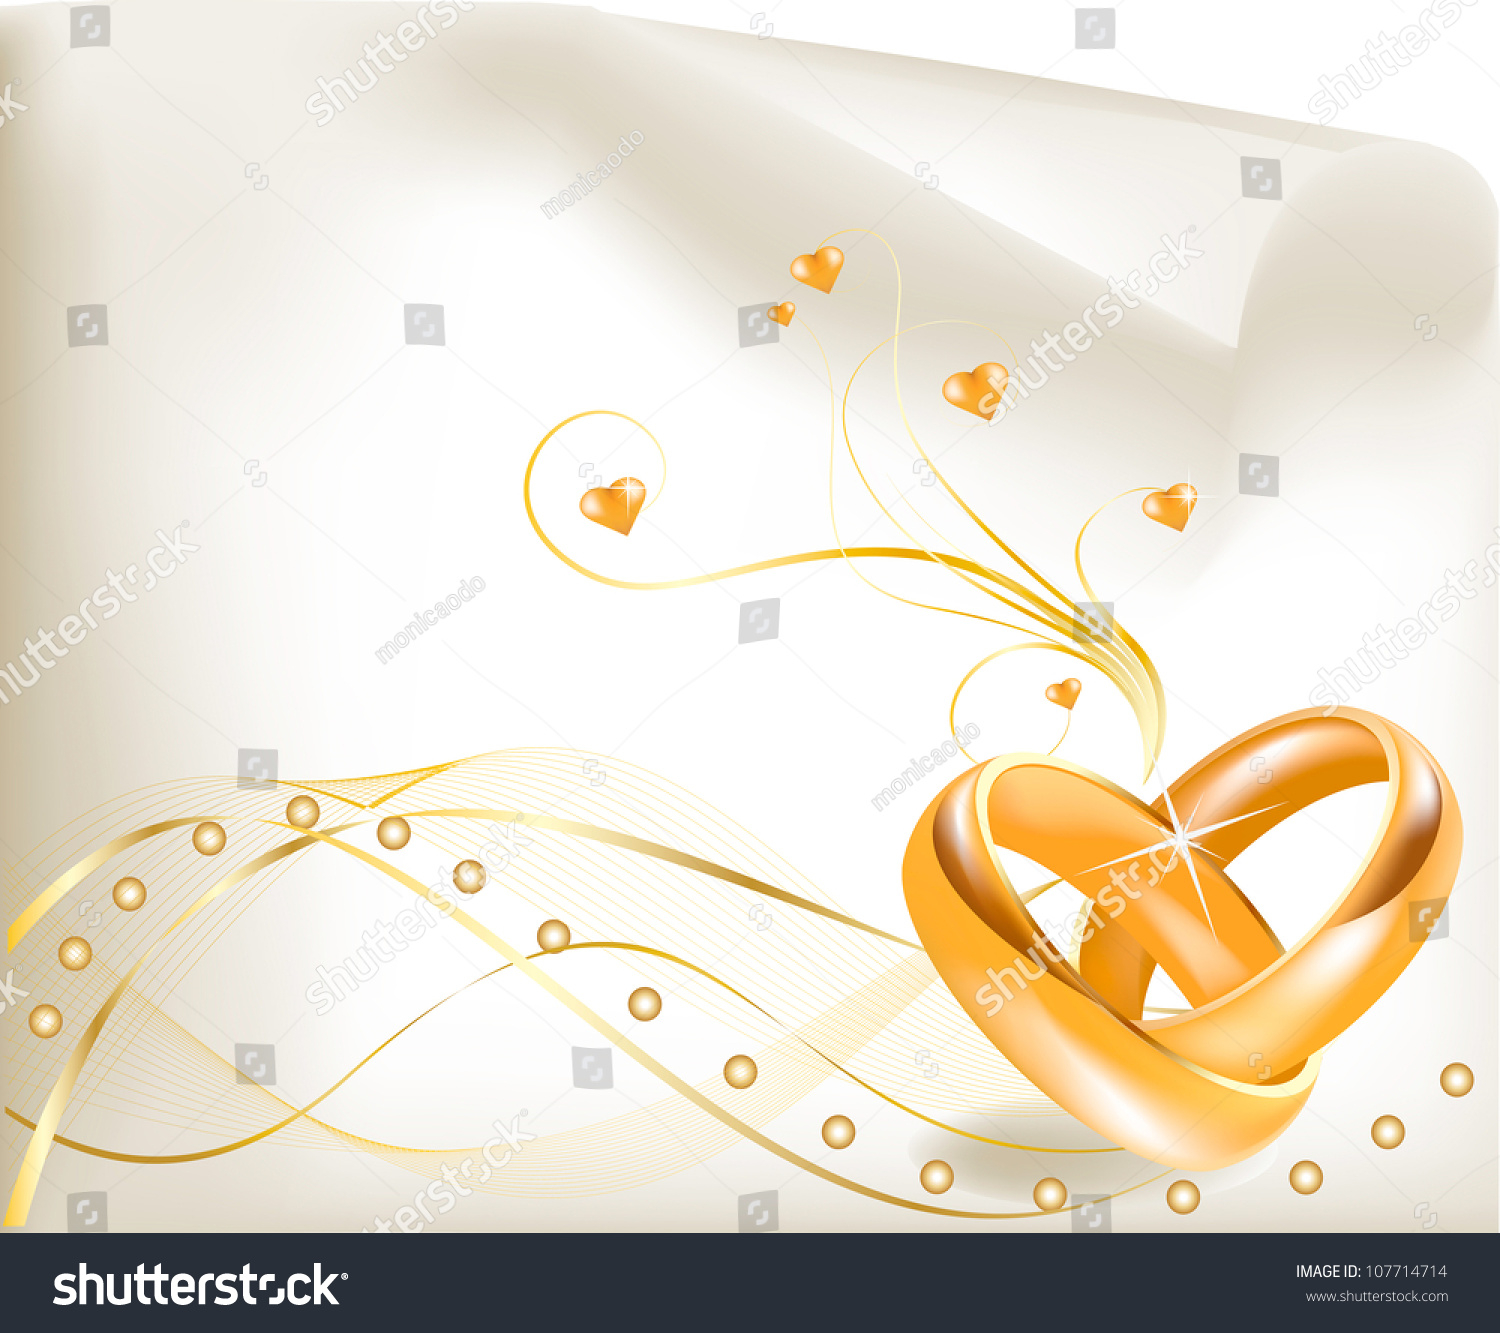 Wedding Invitation Template Beautiful Golden Wedding Stock Vector inside dimensions 1500 X 1333